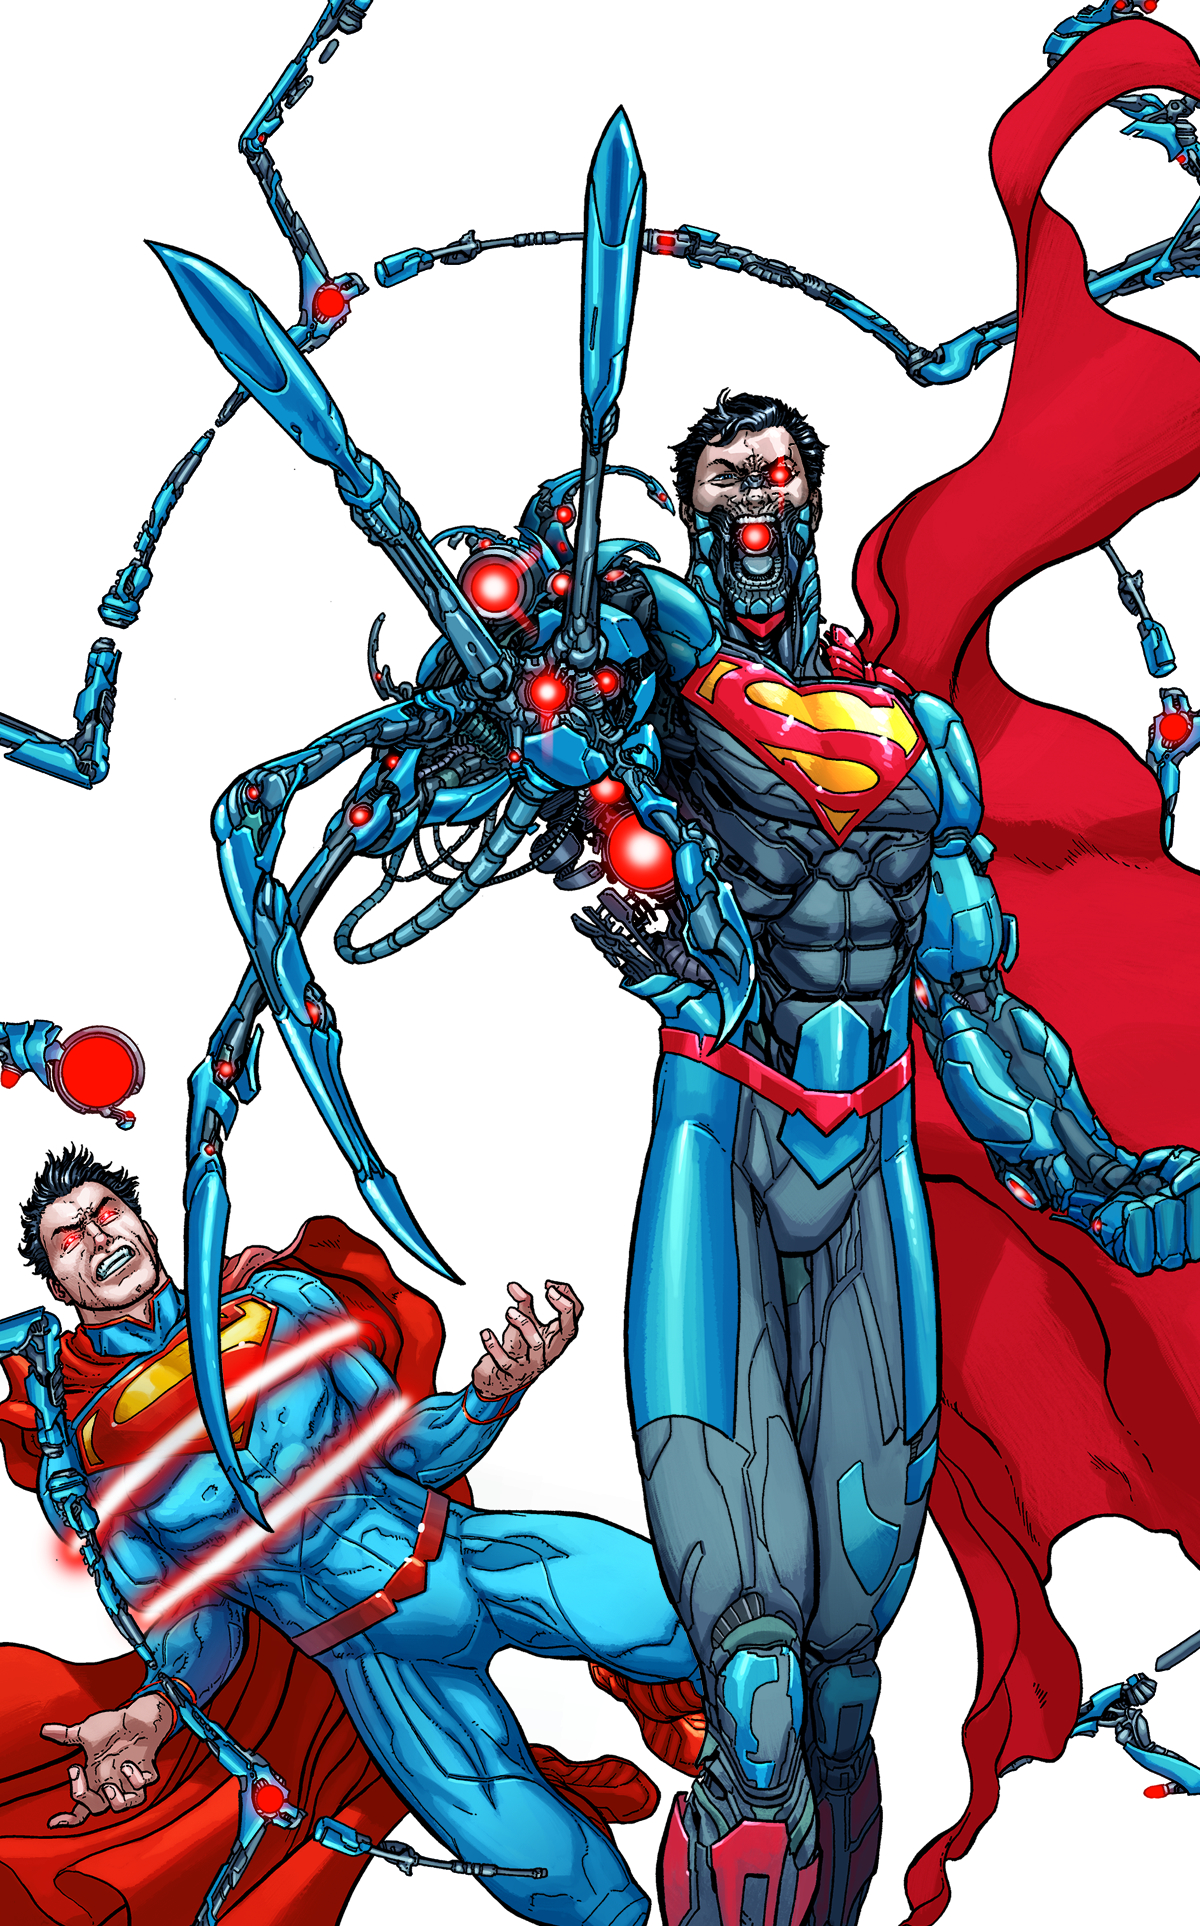 ACTION COMICS #23.1 CYBORG SUPERMAN